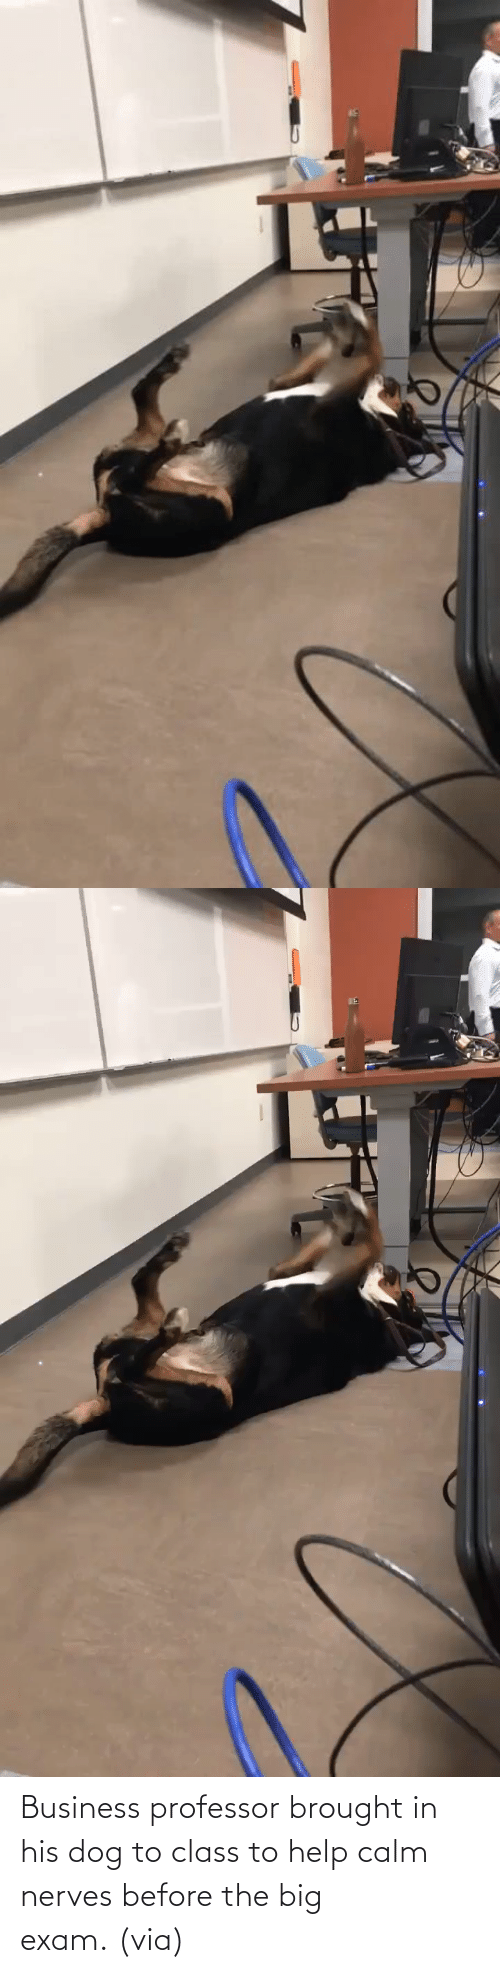 Imgur Com: Business professor brought in his dog to class to help calm nerves before the big exam. (via)